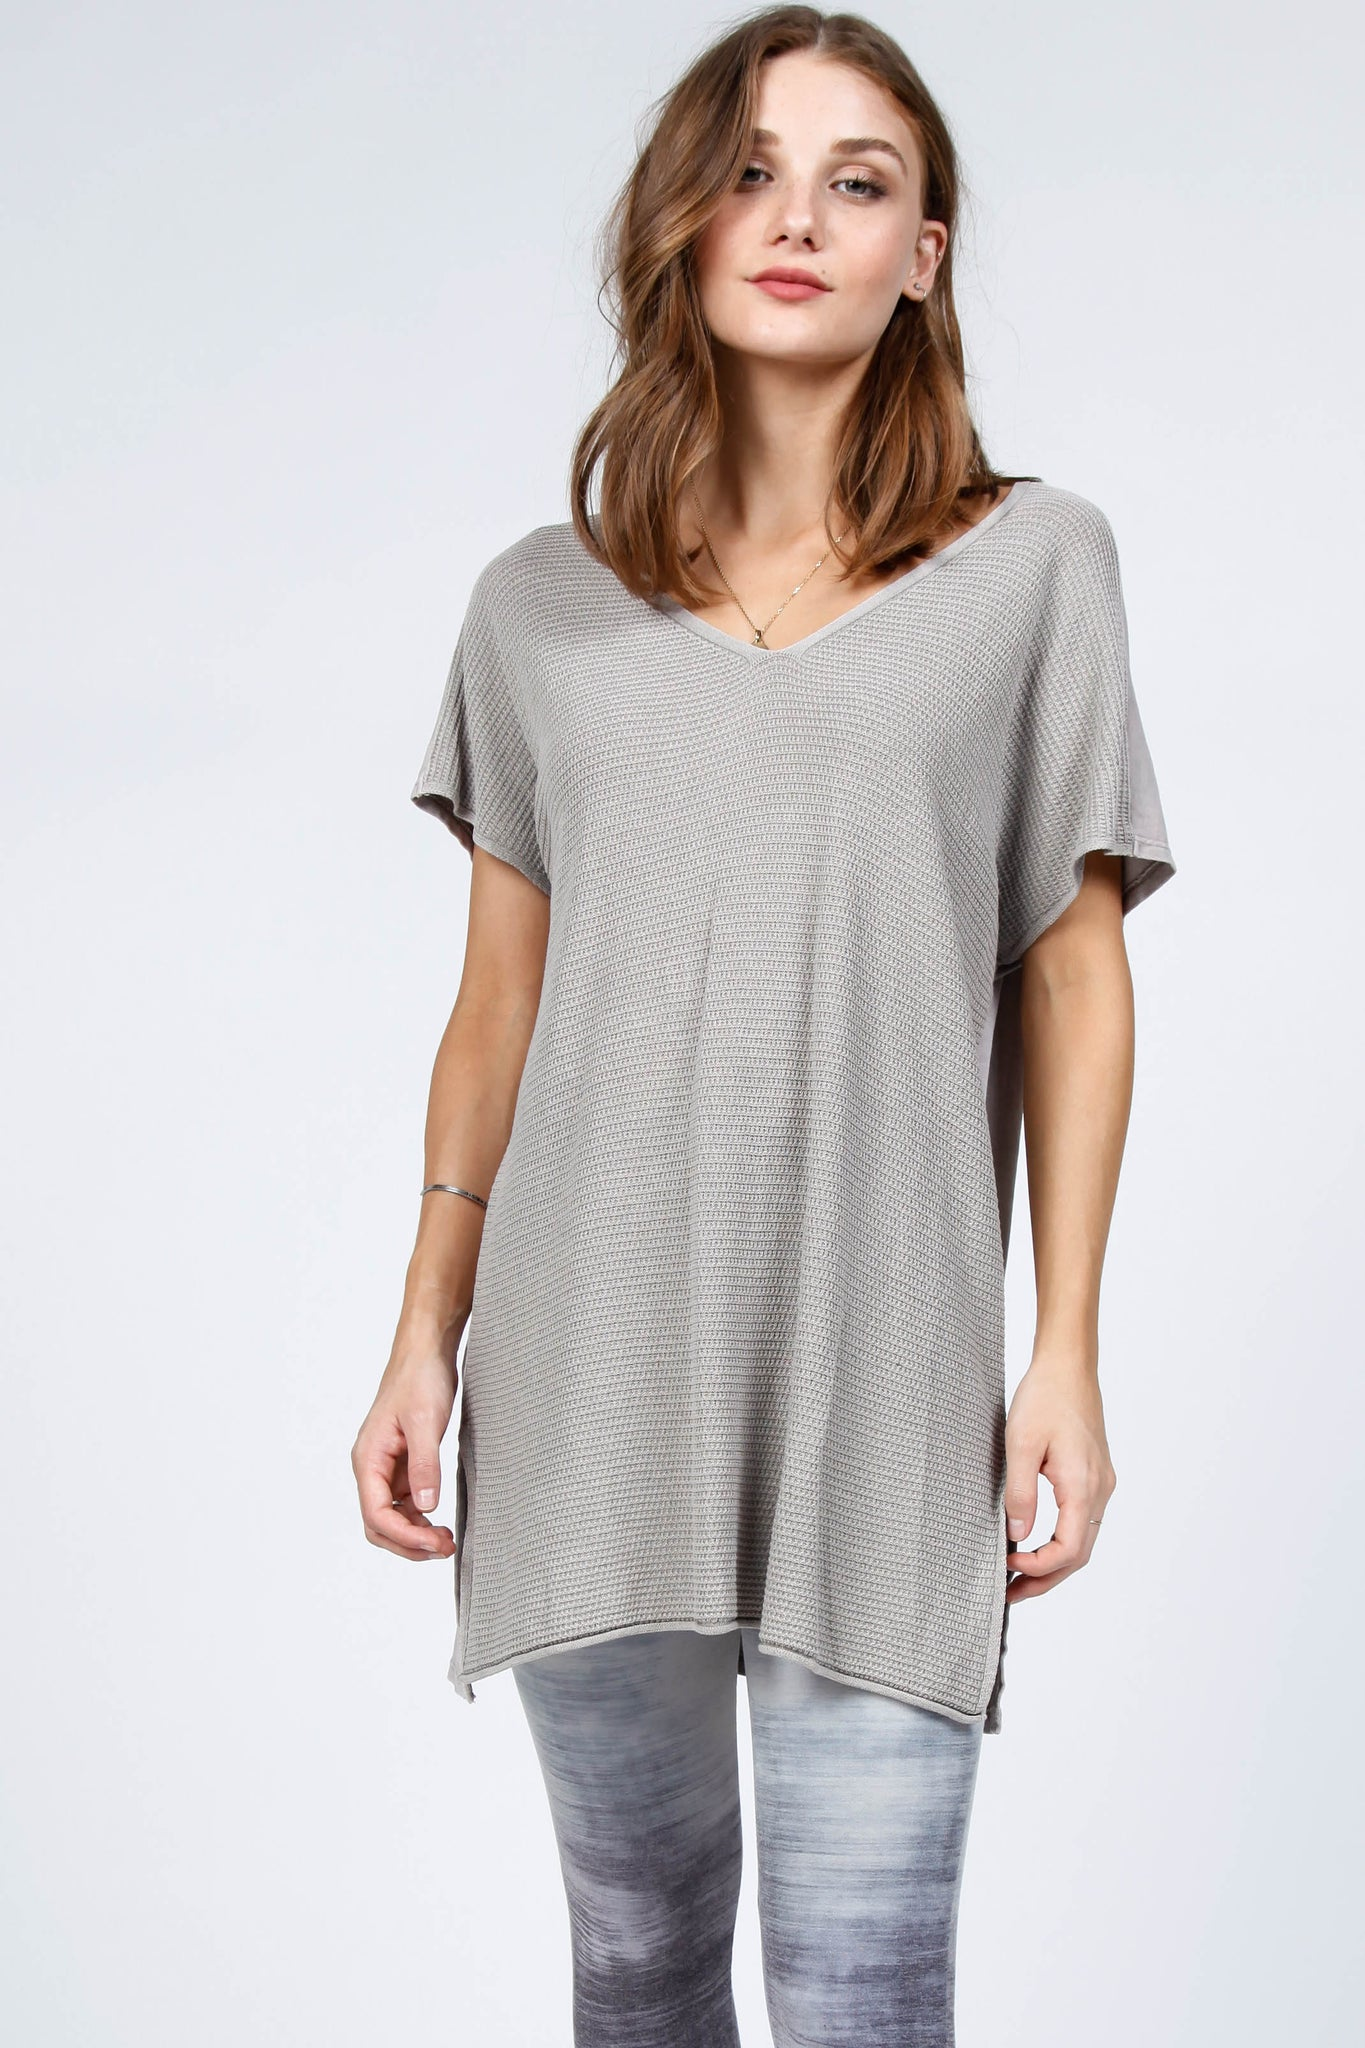 Harlow Knit V-Neck Top